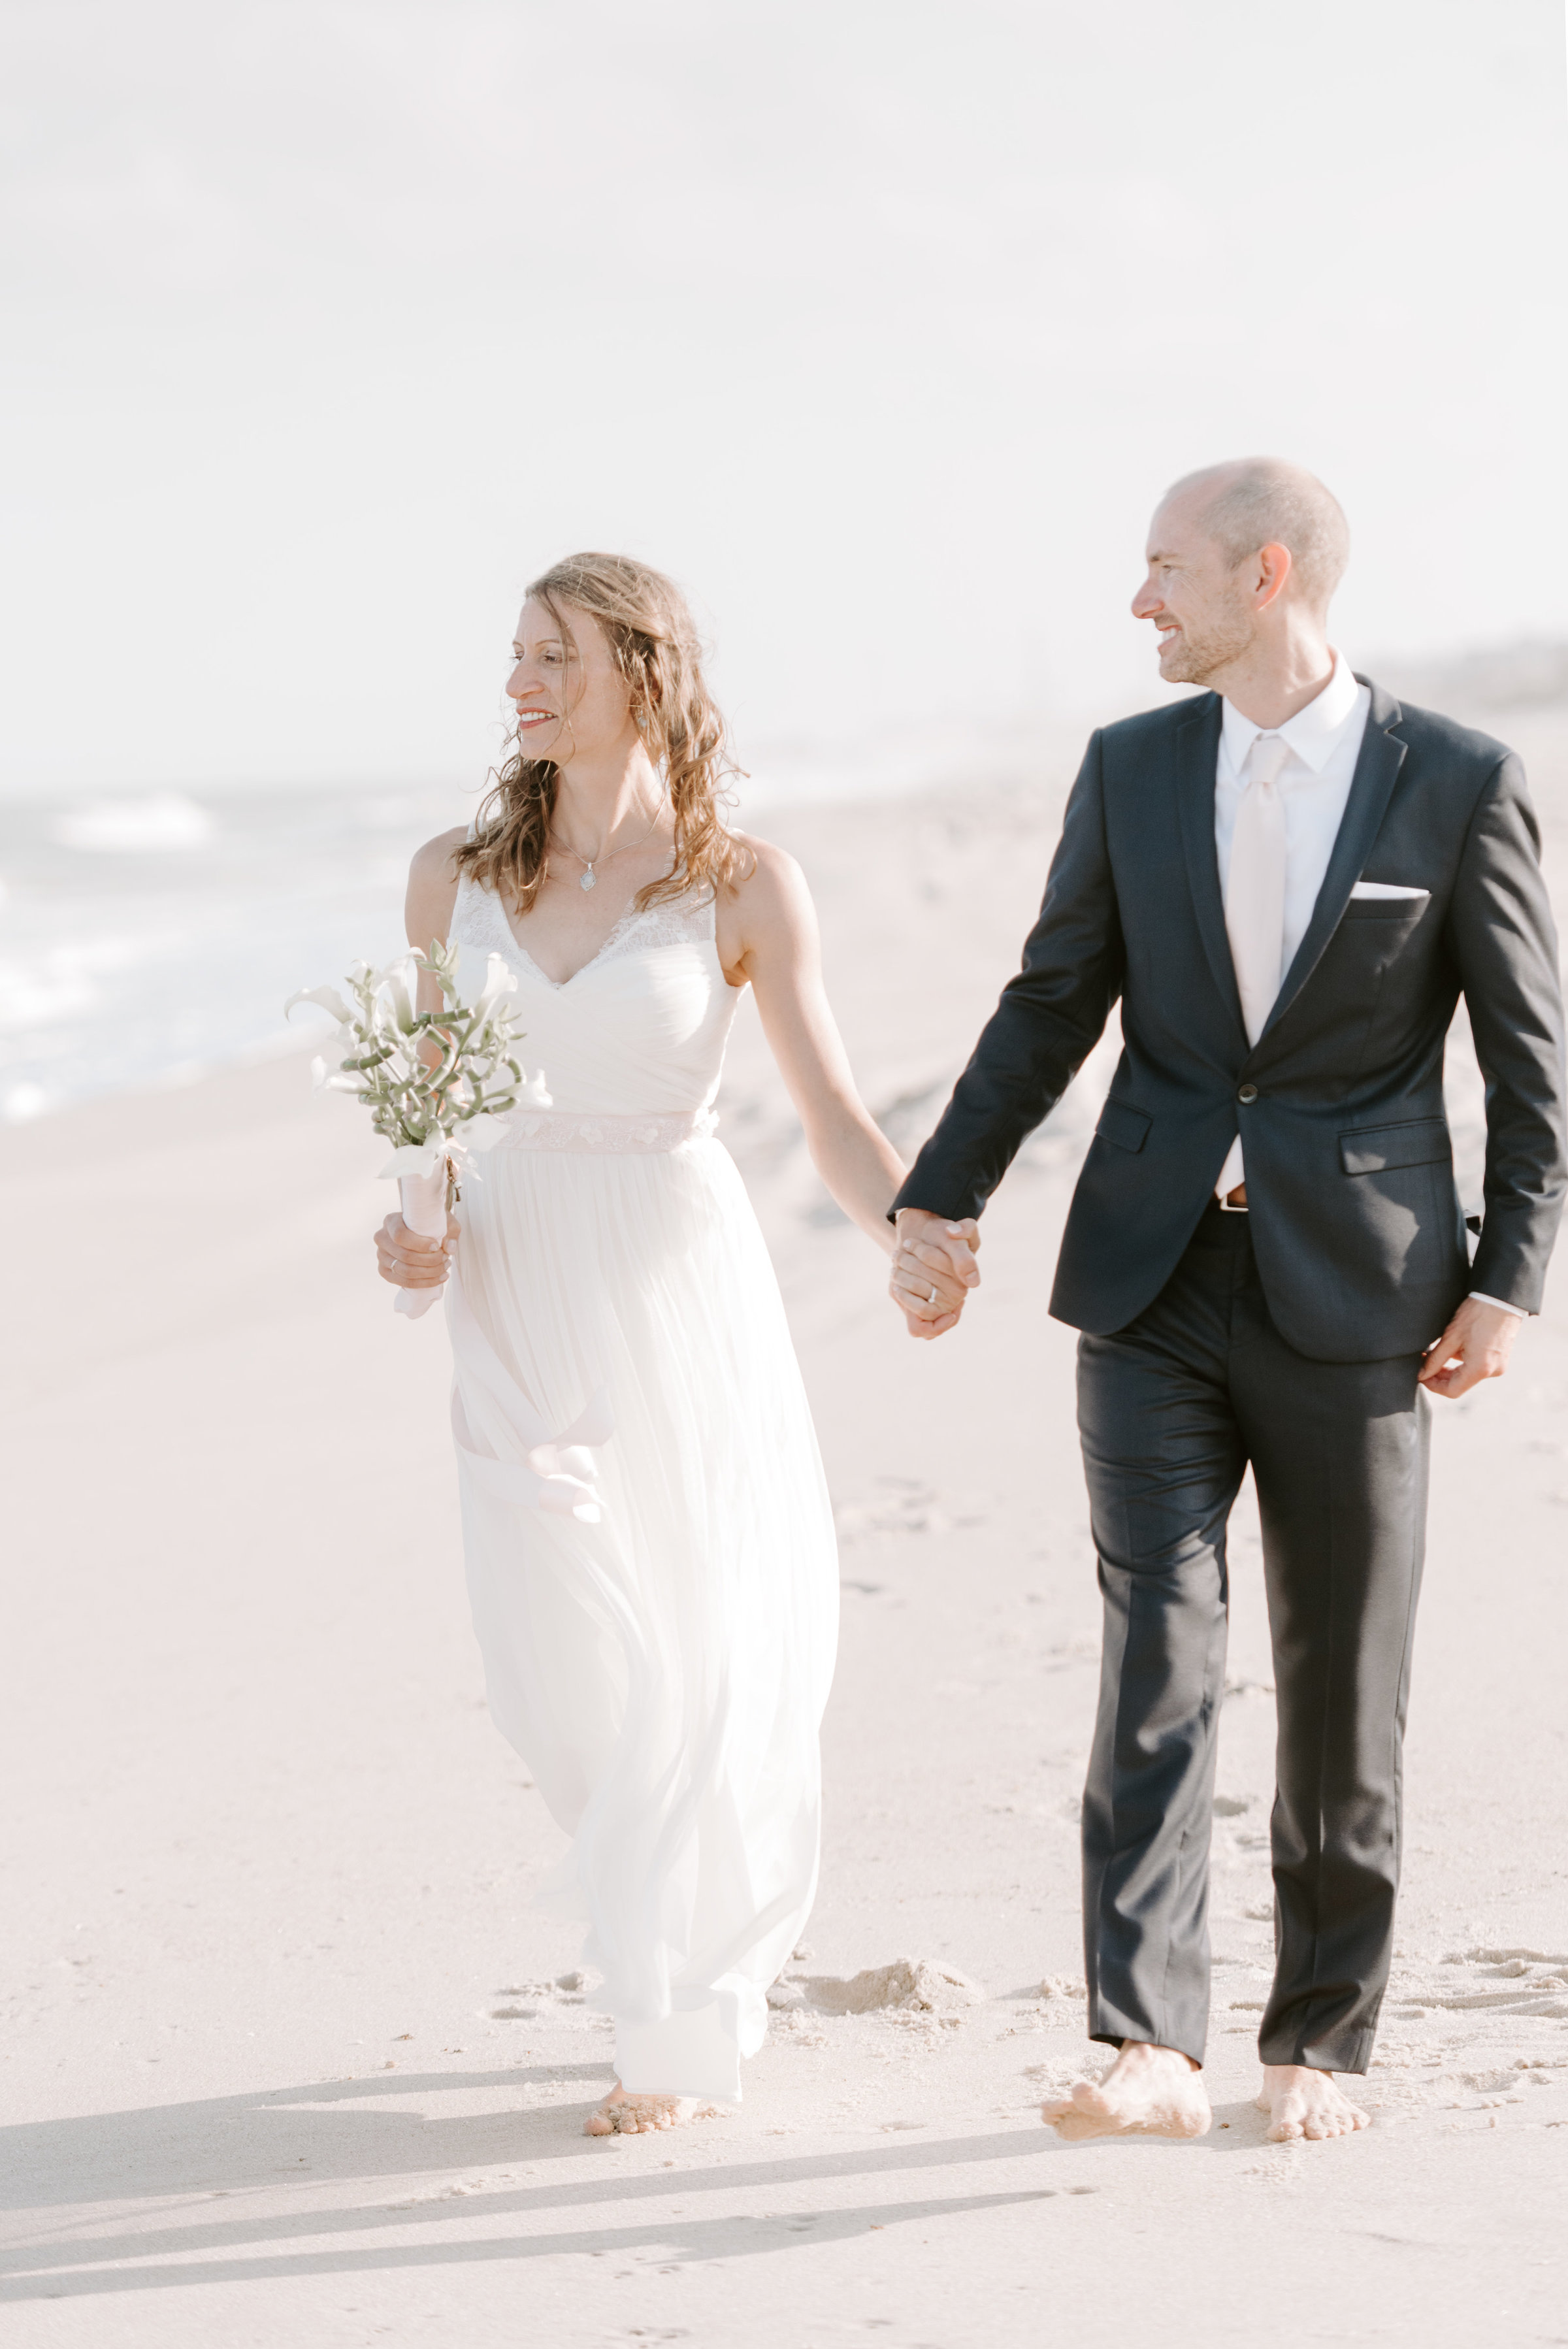 wedding photography during beach wedding in hudson valley, connecticut